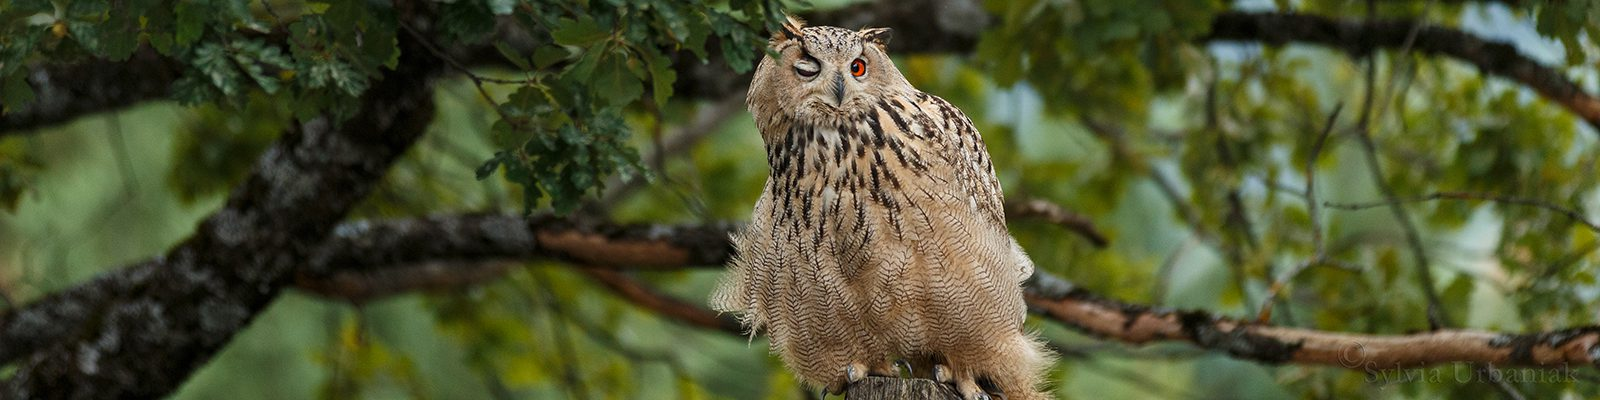 slider_uhu_auge_eagle_owl